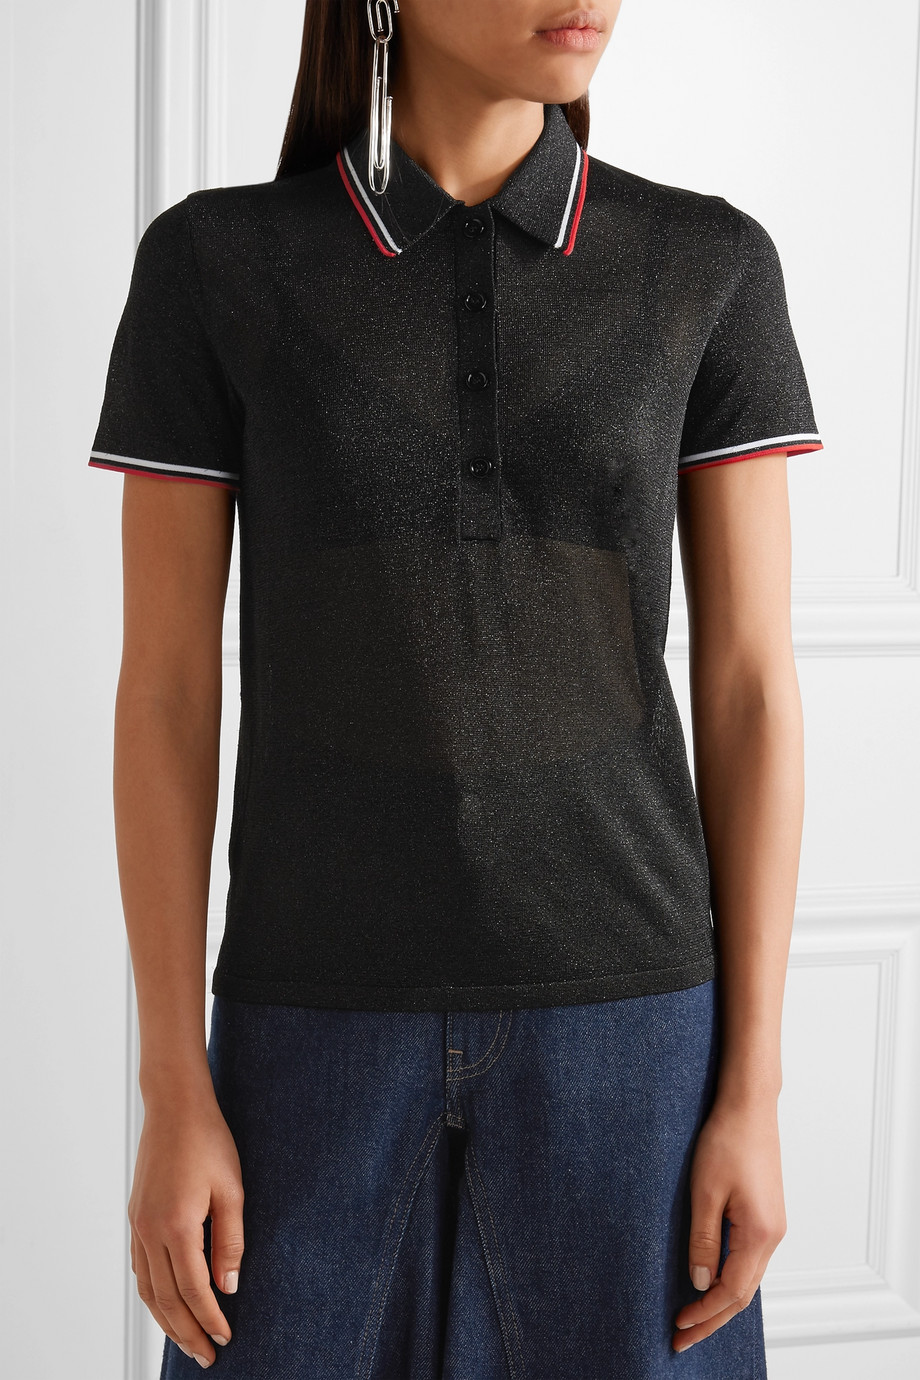 Alexander Wang metallic polo